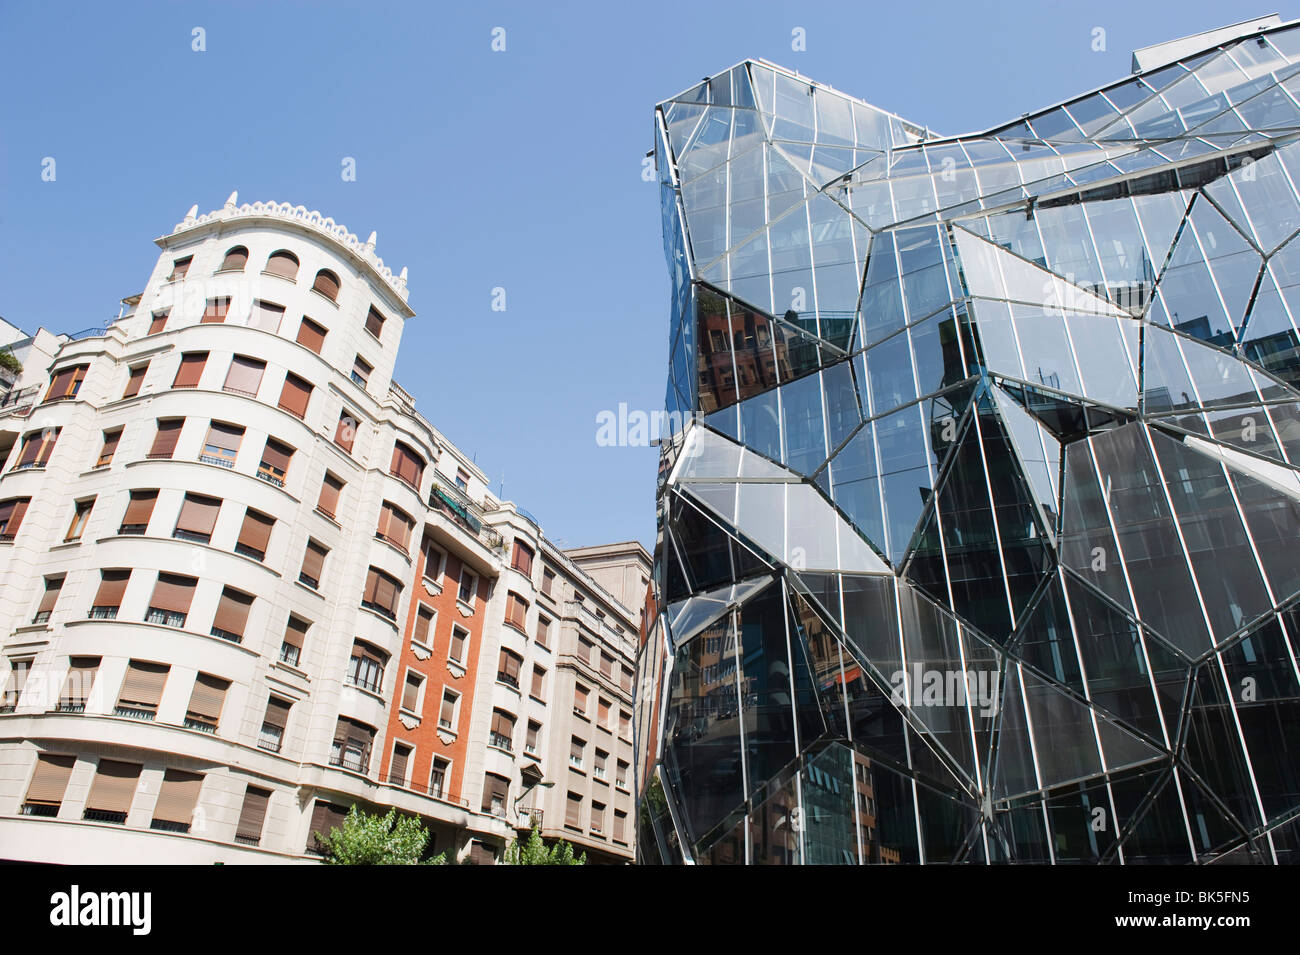 Modern Architecture Spain modern architecture of the department of health, bilbao, basque